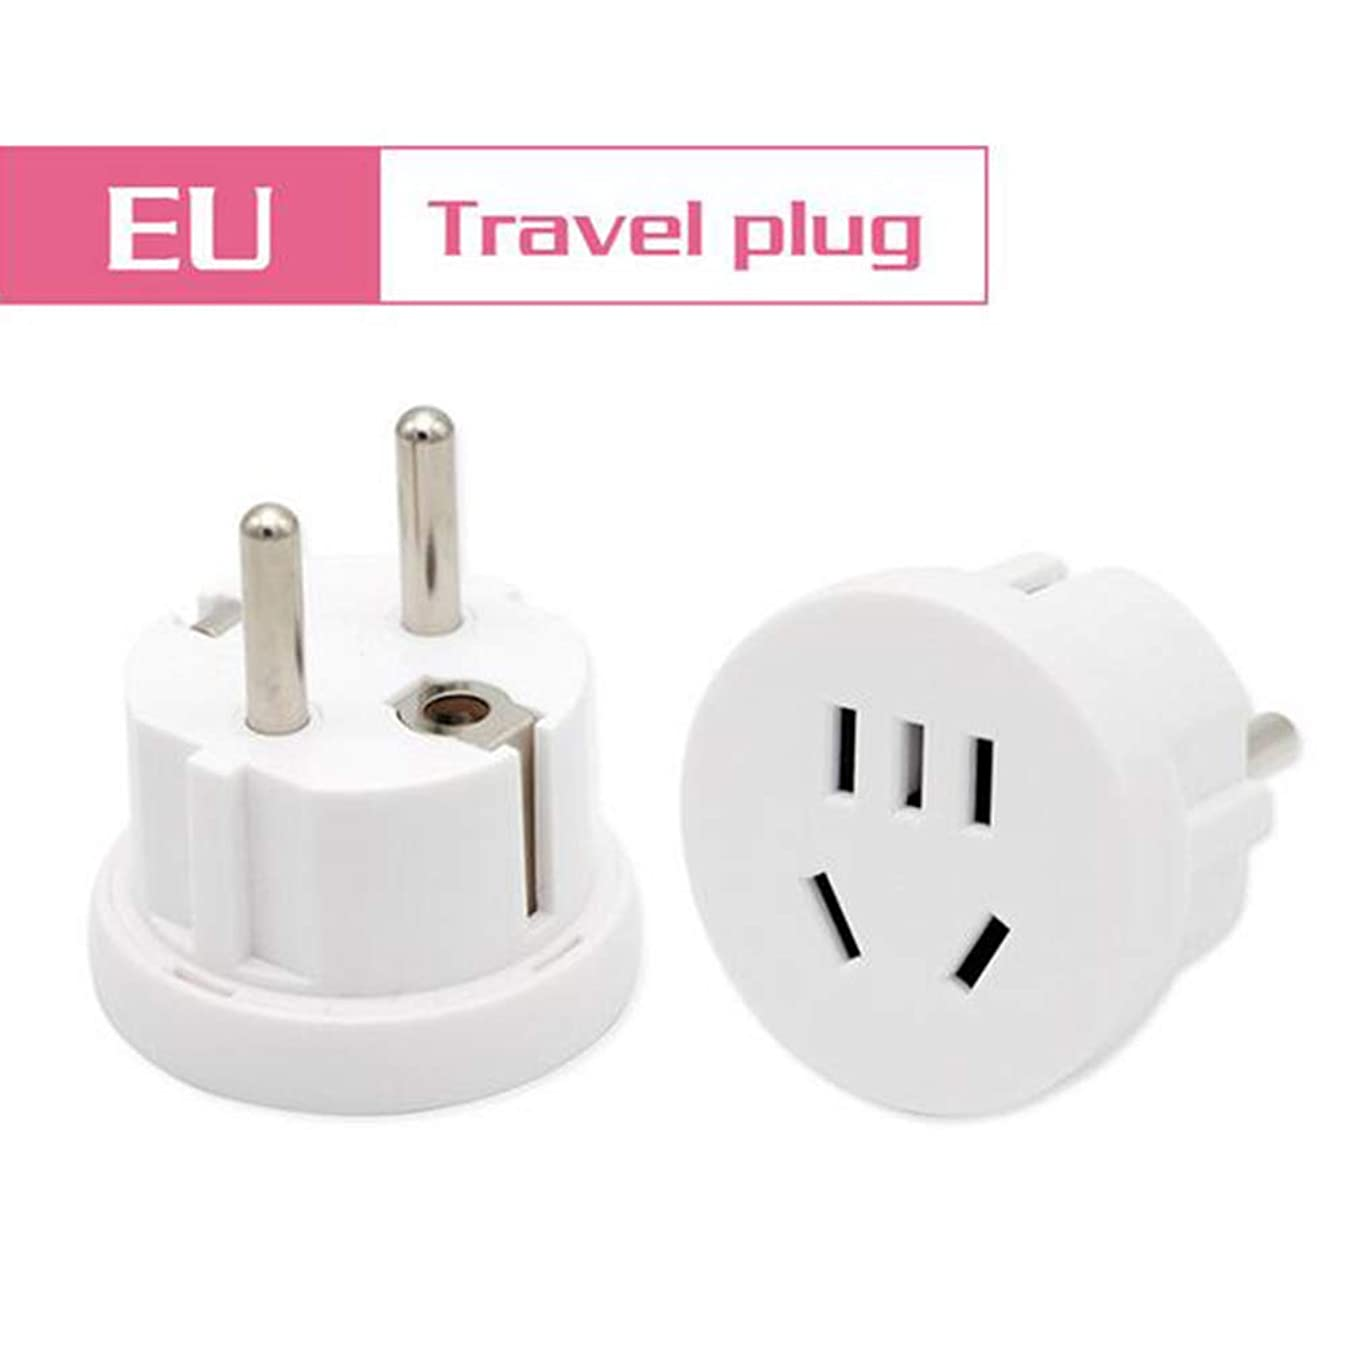 記念碑簡略化する定数1PC US AU to EU Plug USA AUS to Euro Europe Travel Wall AC Power Plug Wall Charger Outlet Adapter Converter 2 Round Pin Socket,白